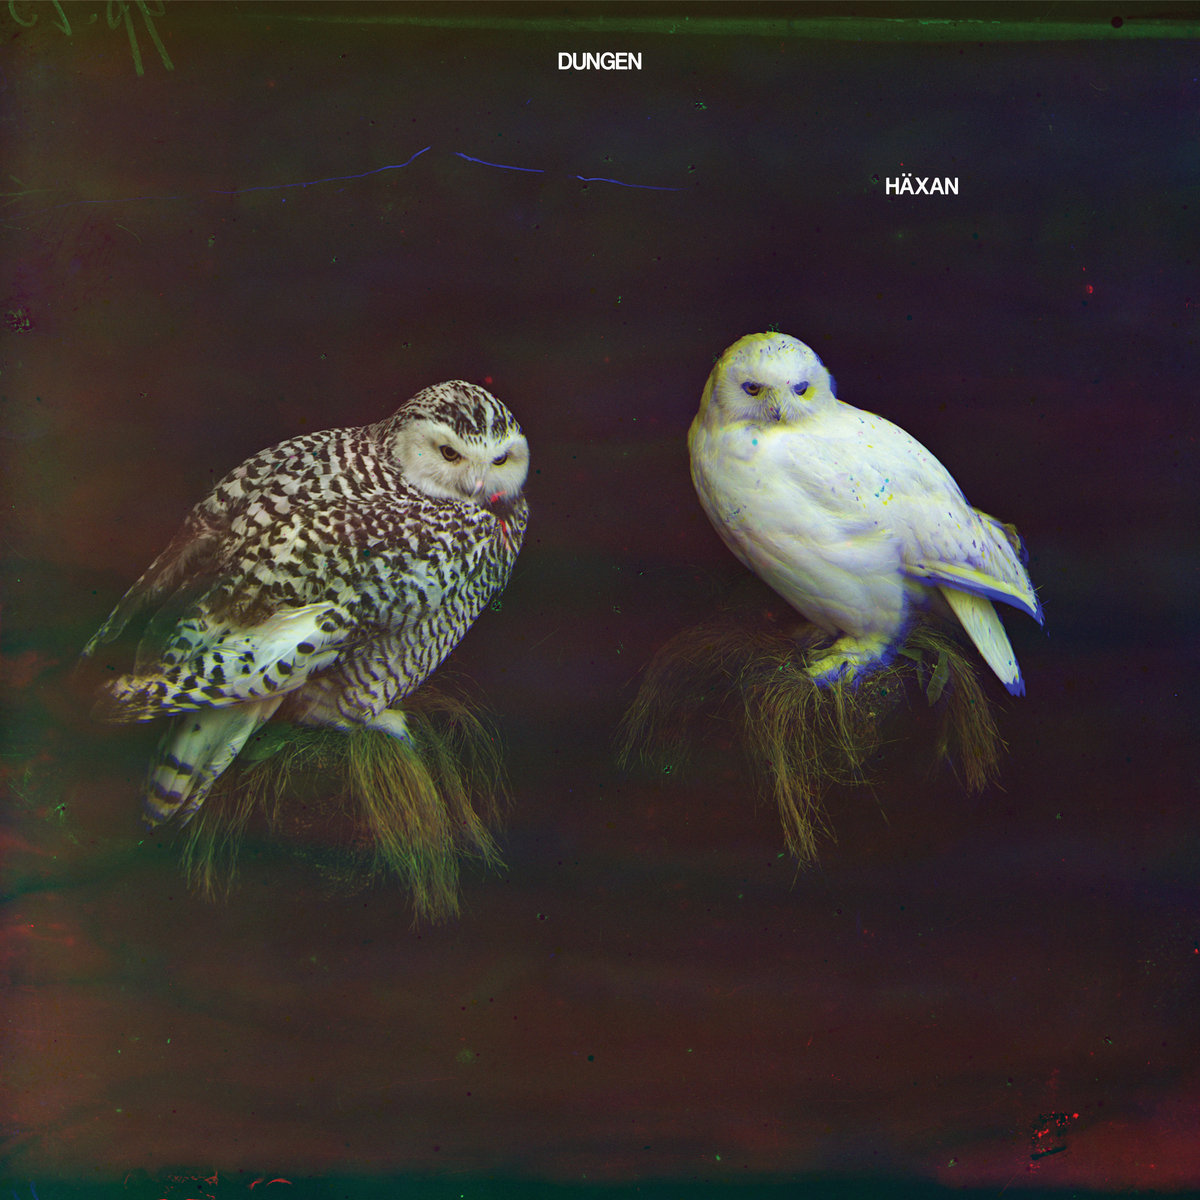 'Häxan' album cover by Dungen.